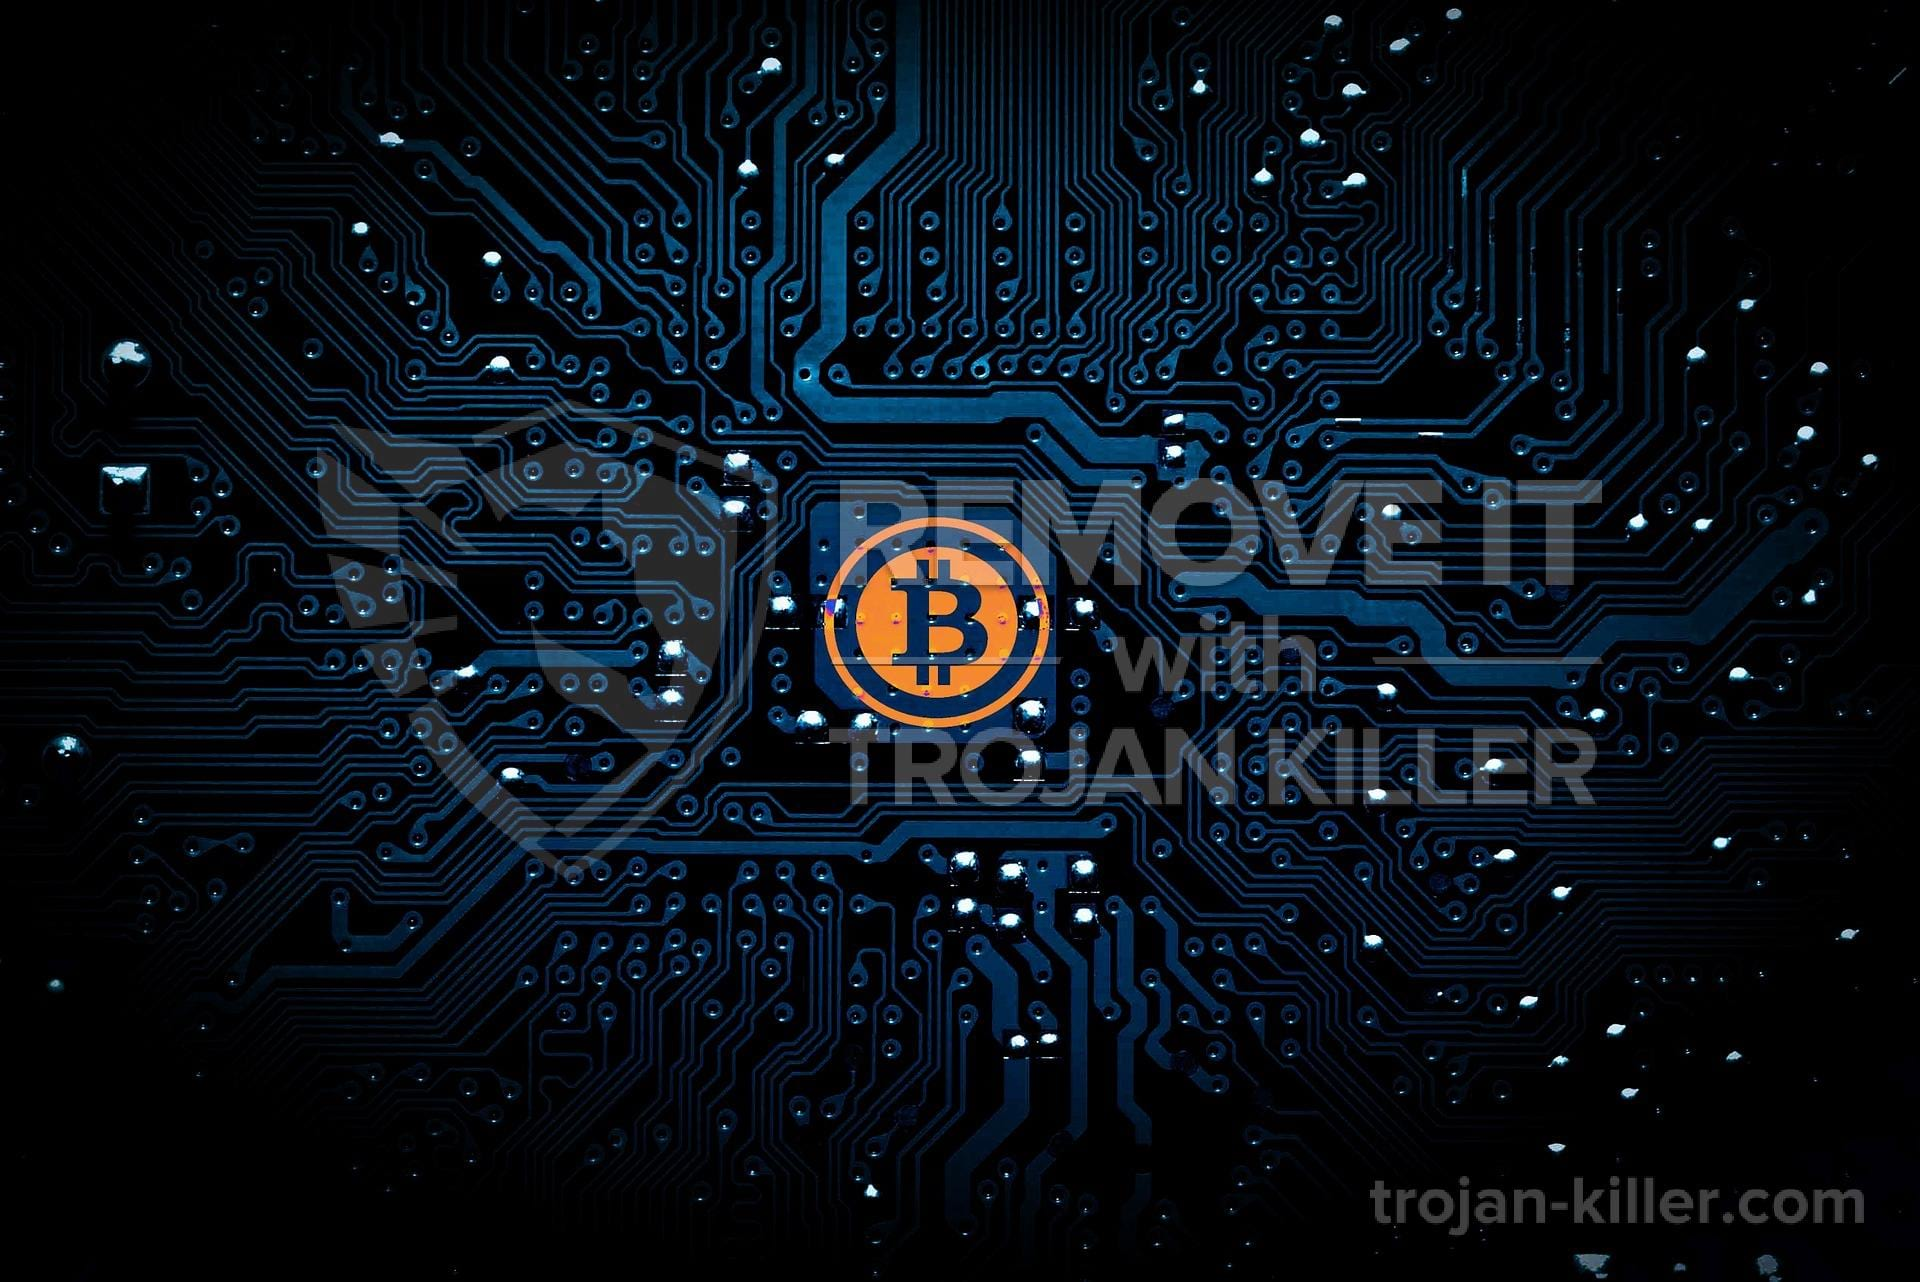 How to get rid of solved how to remove bitcoin miner malware remove bitcoin miner malware virus ccuart Images